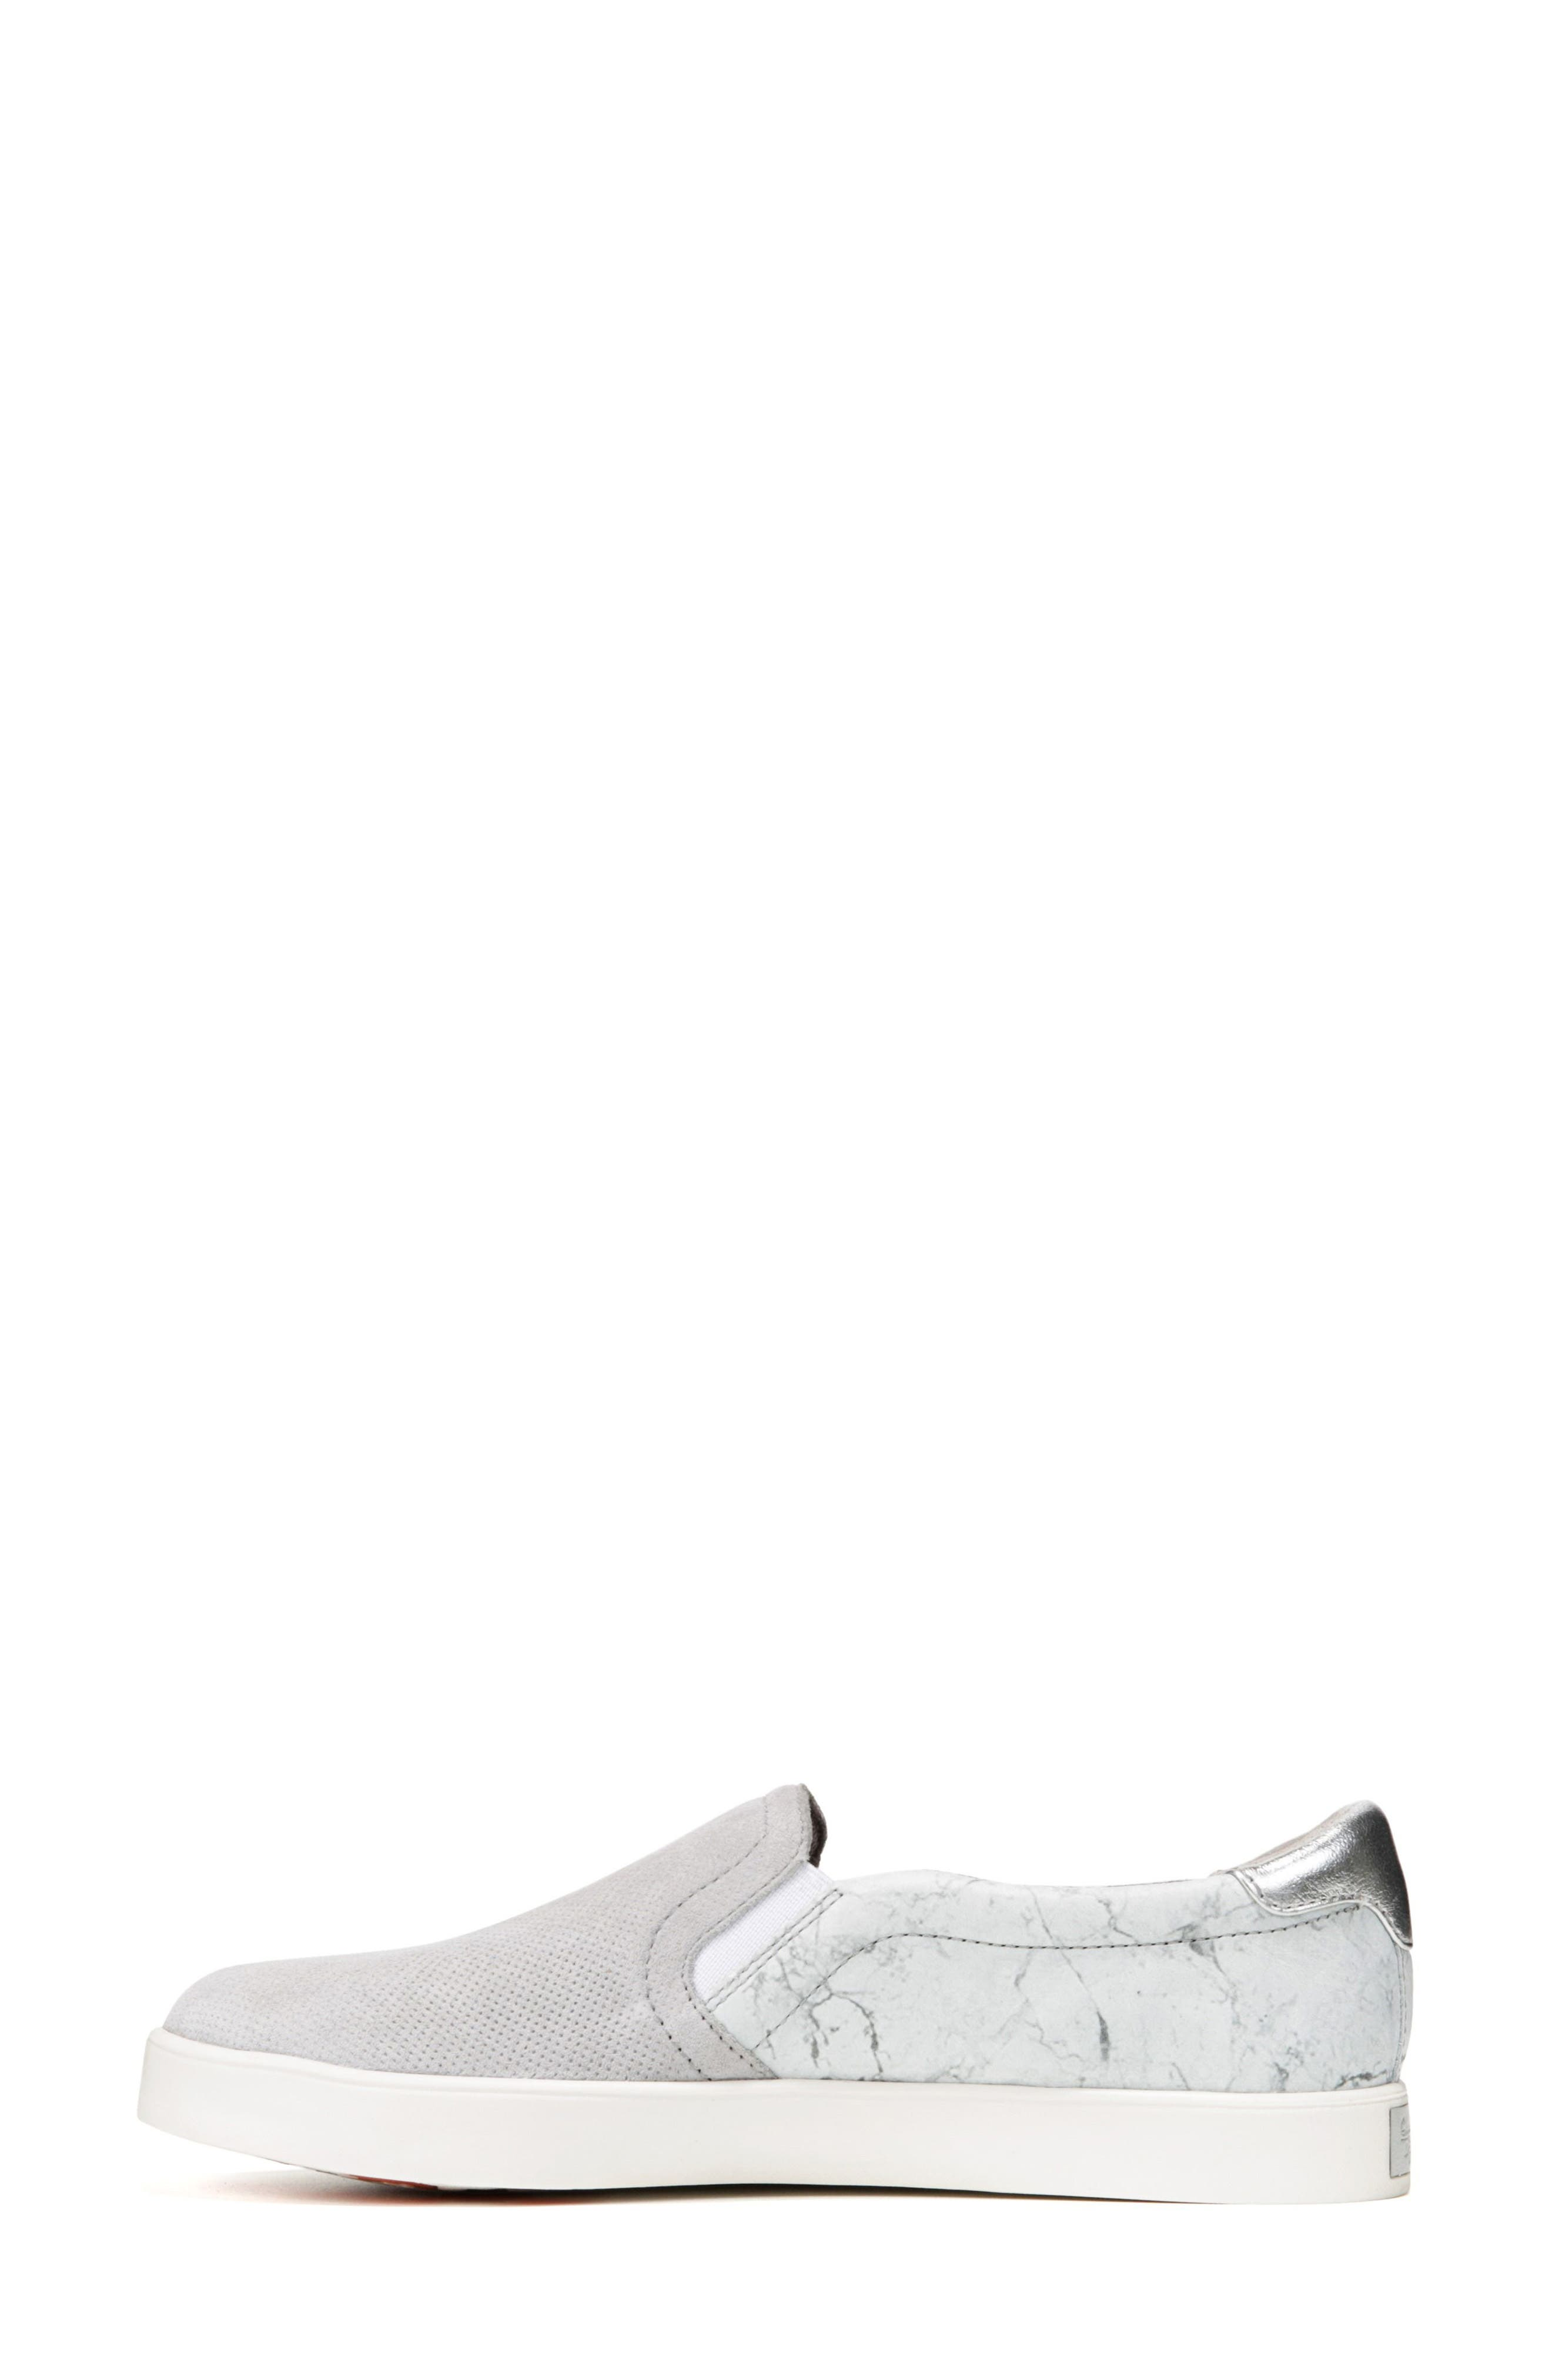 Alternate Image 2  - Dr. Scholl's Original Collection 'Scout' Slip On Sneaker (Women)